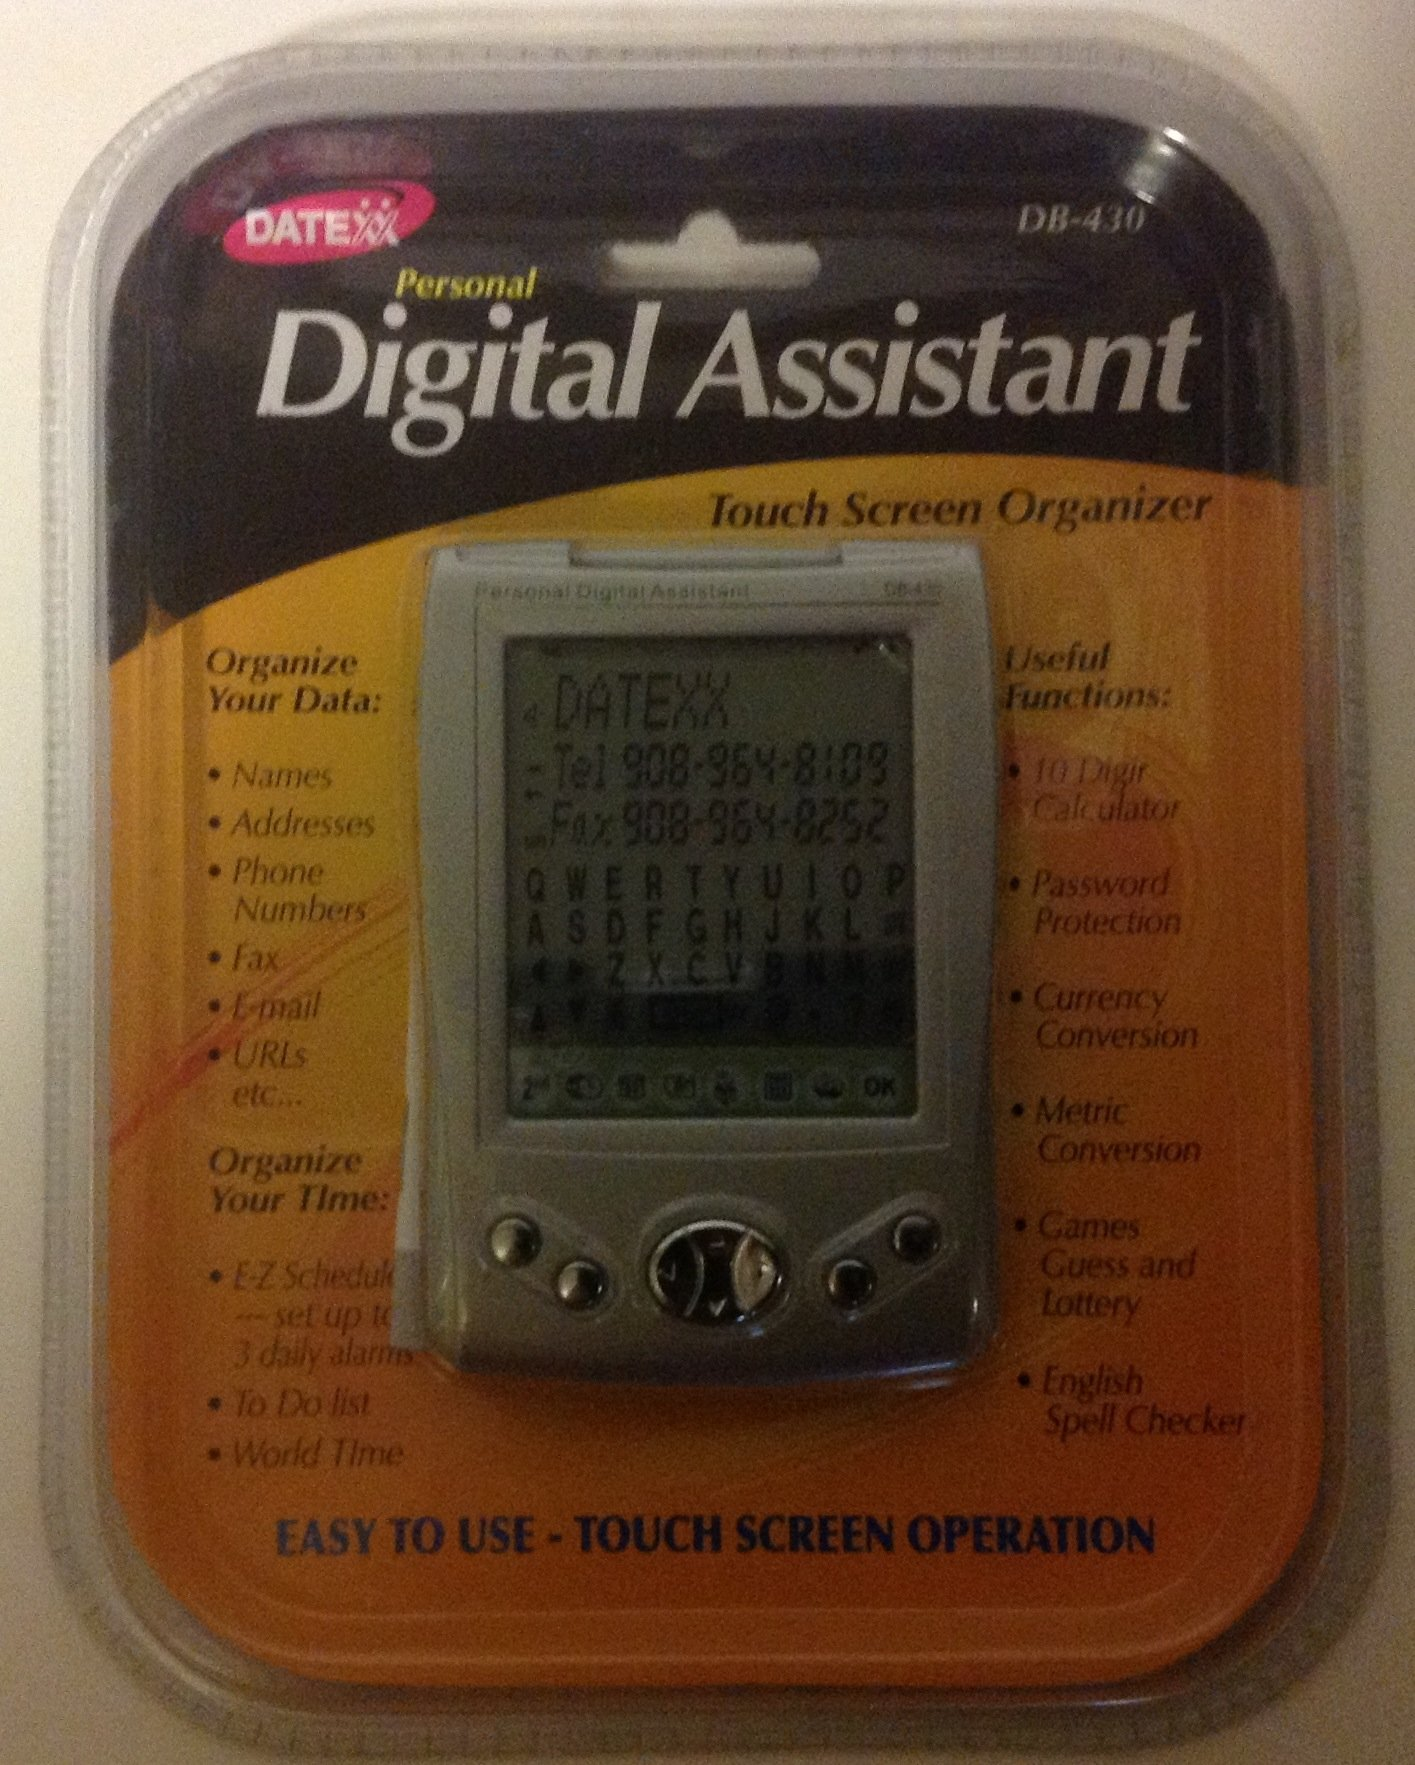 DATEXX Personal Digital Assistant Touch Screen Organizer